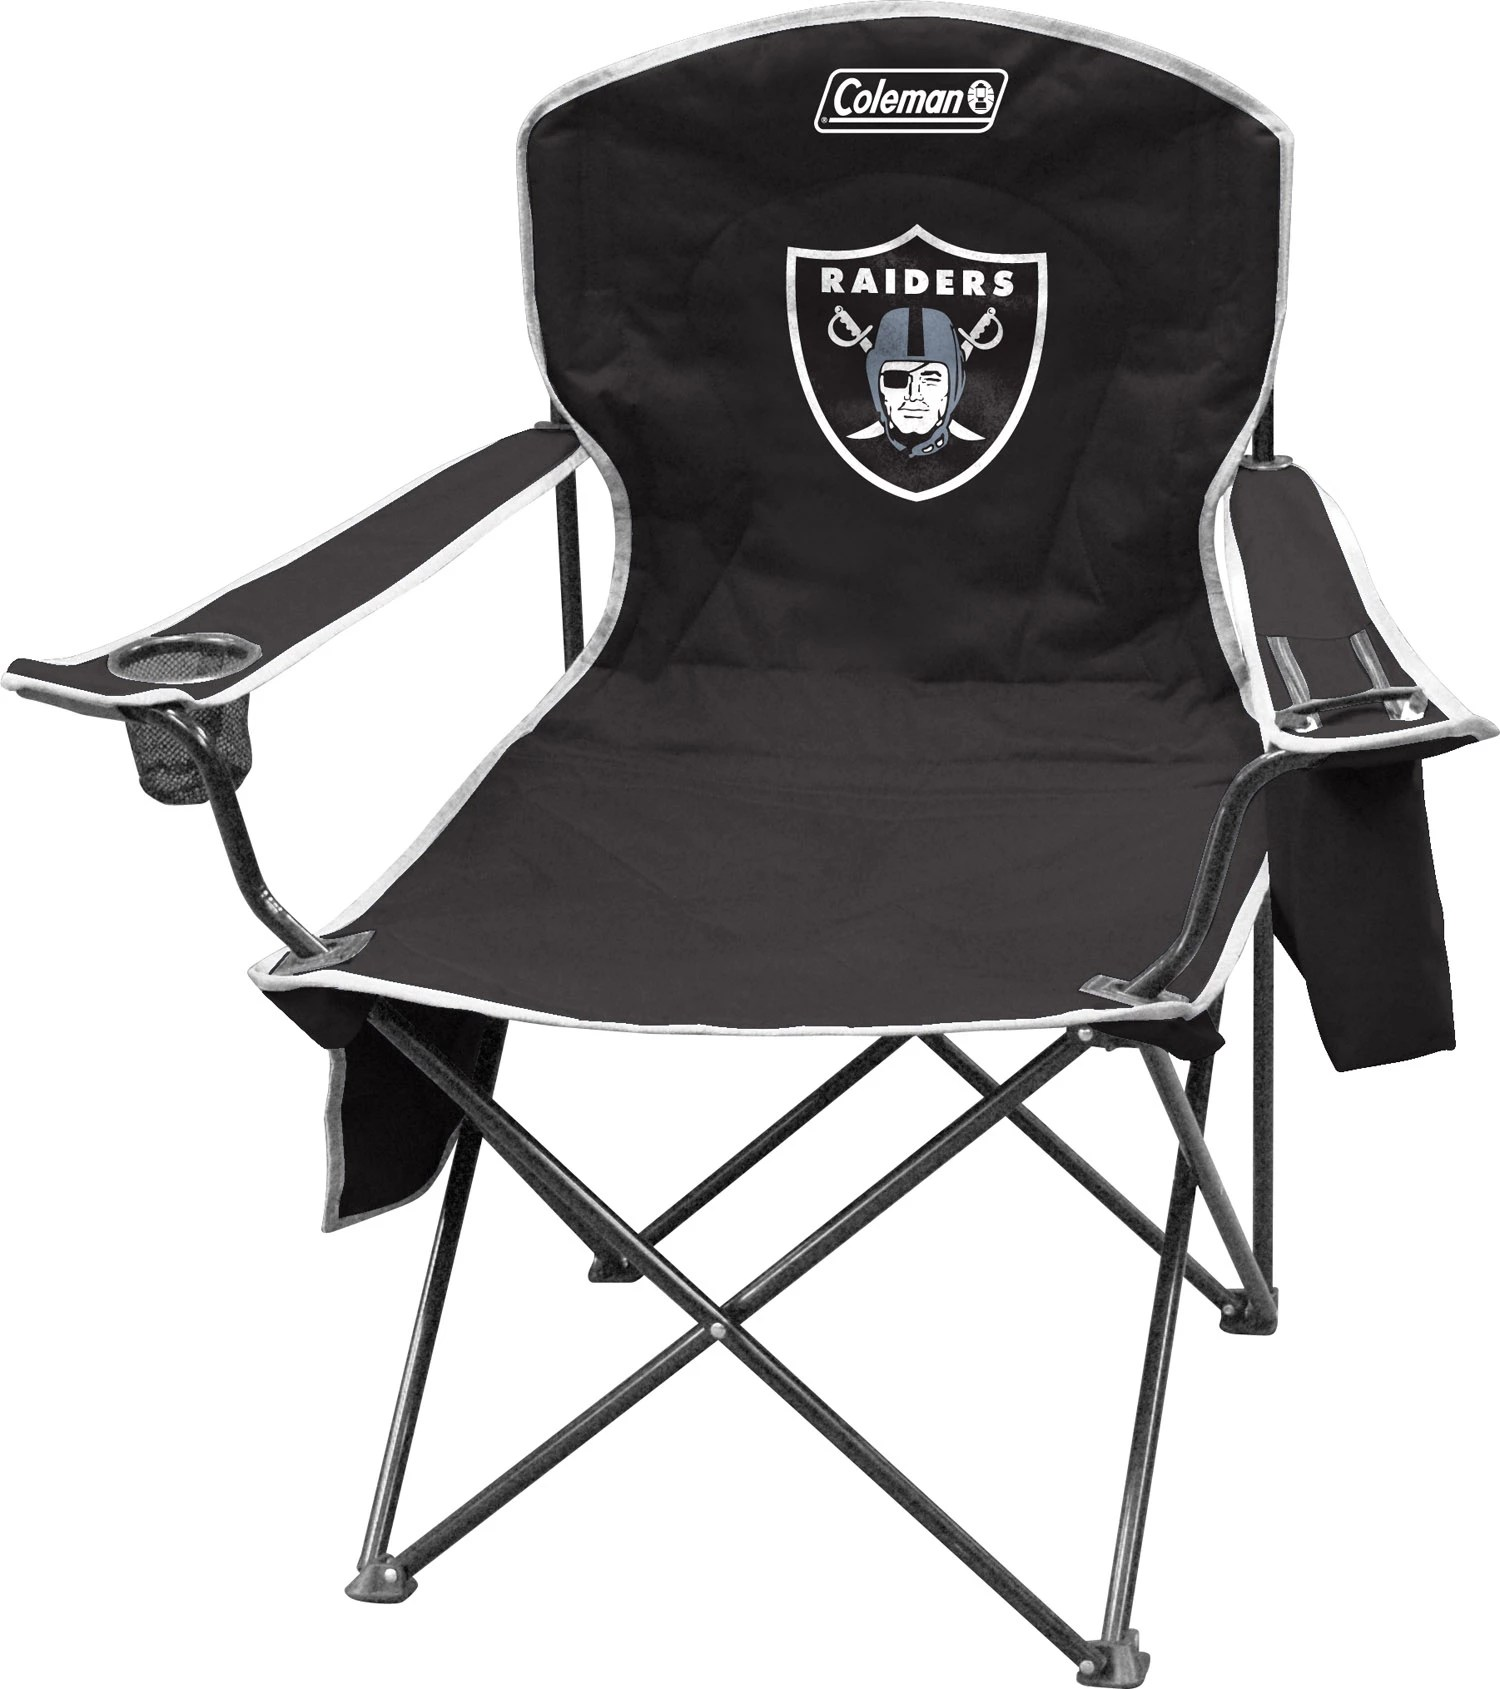 oakland raiders chair massage recliner chairs coleman quad with cooler dick s sporting goods noimagefound 1